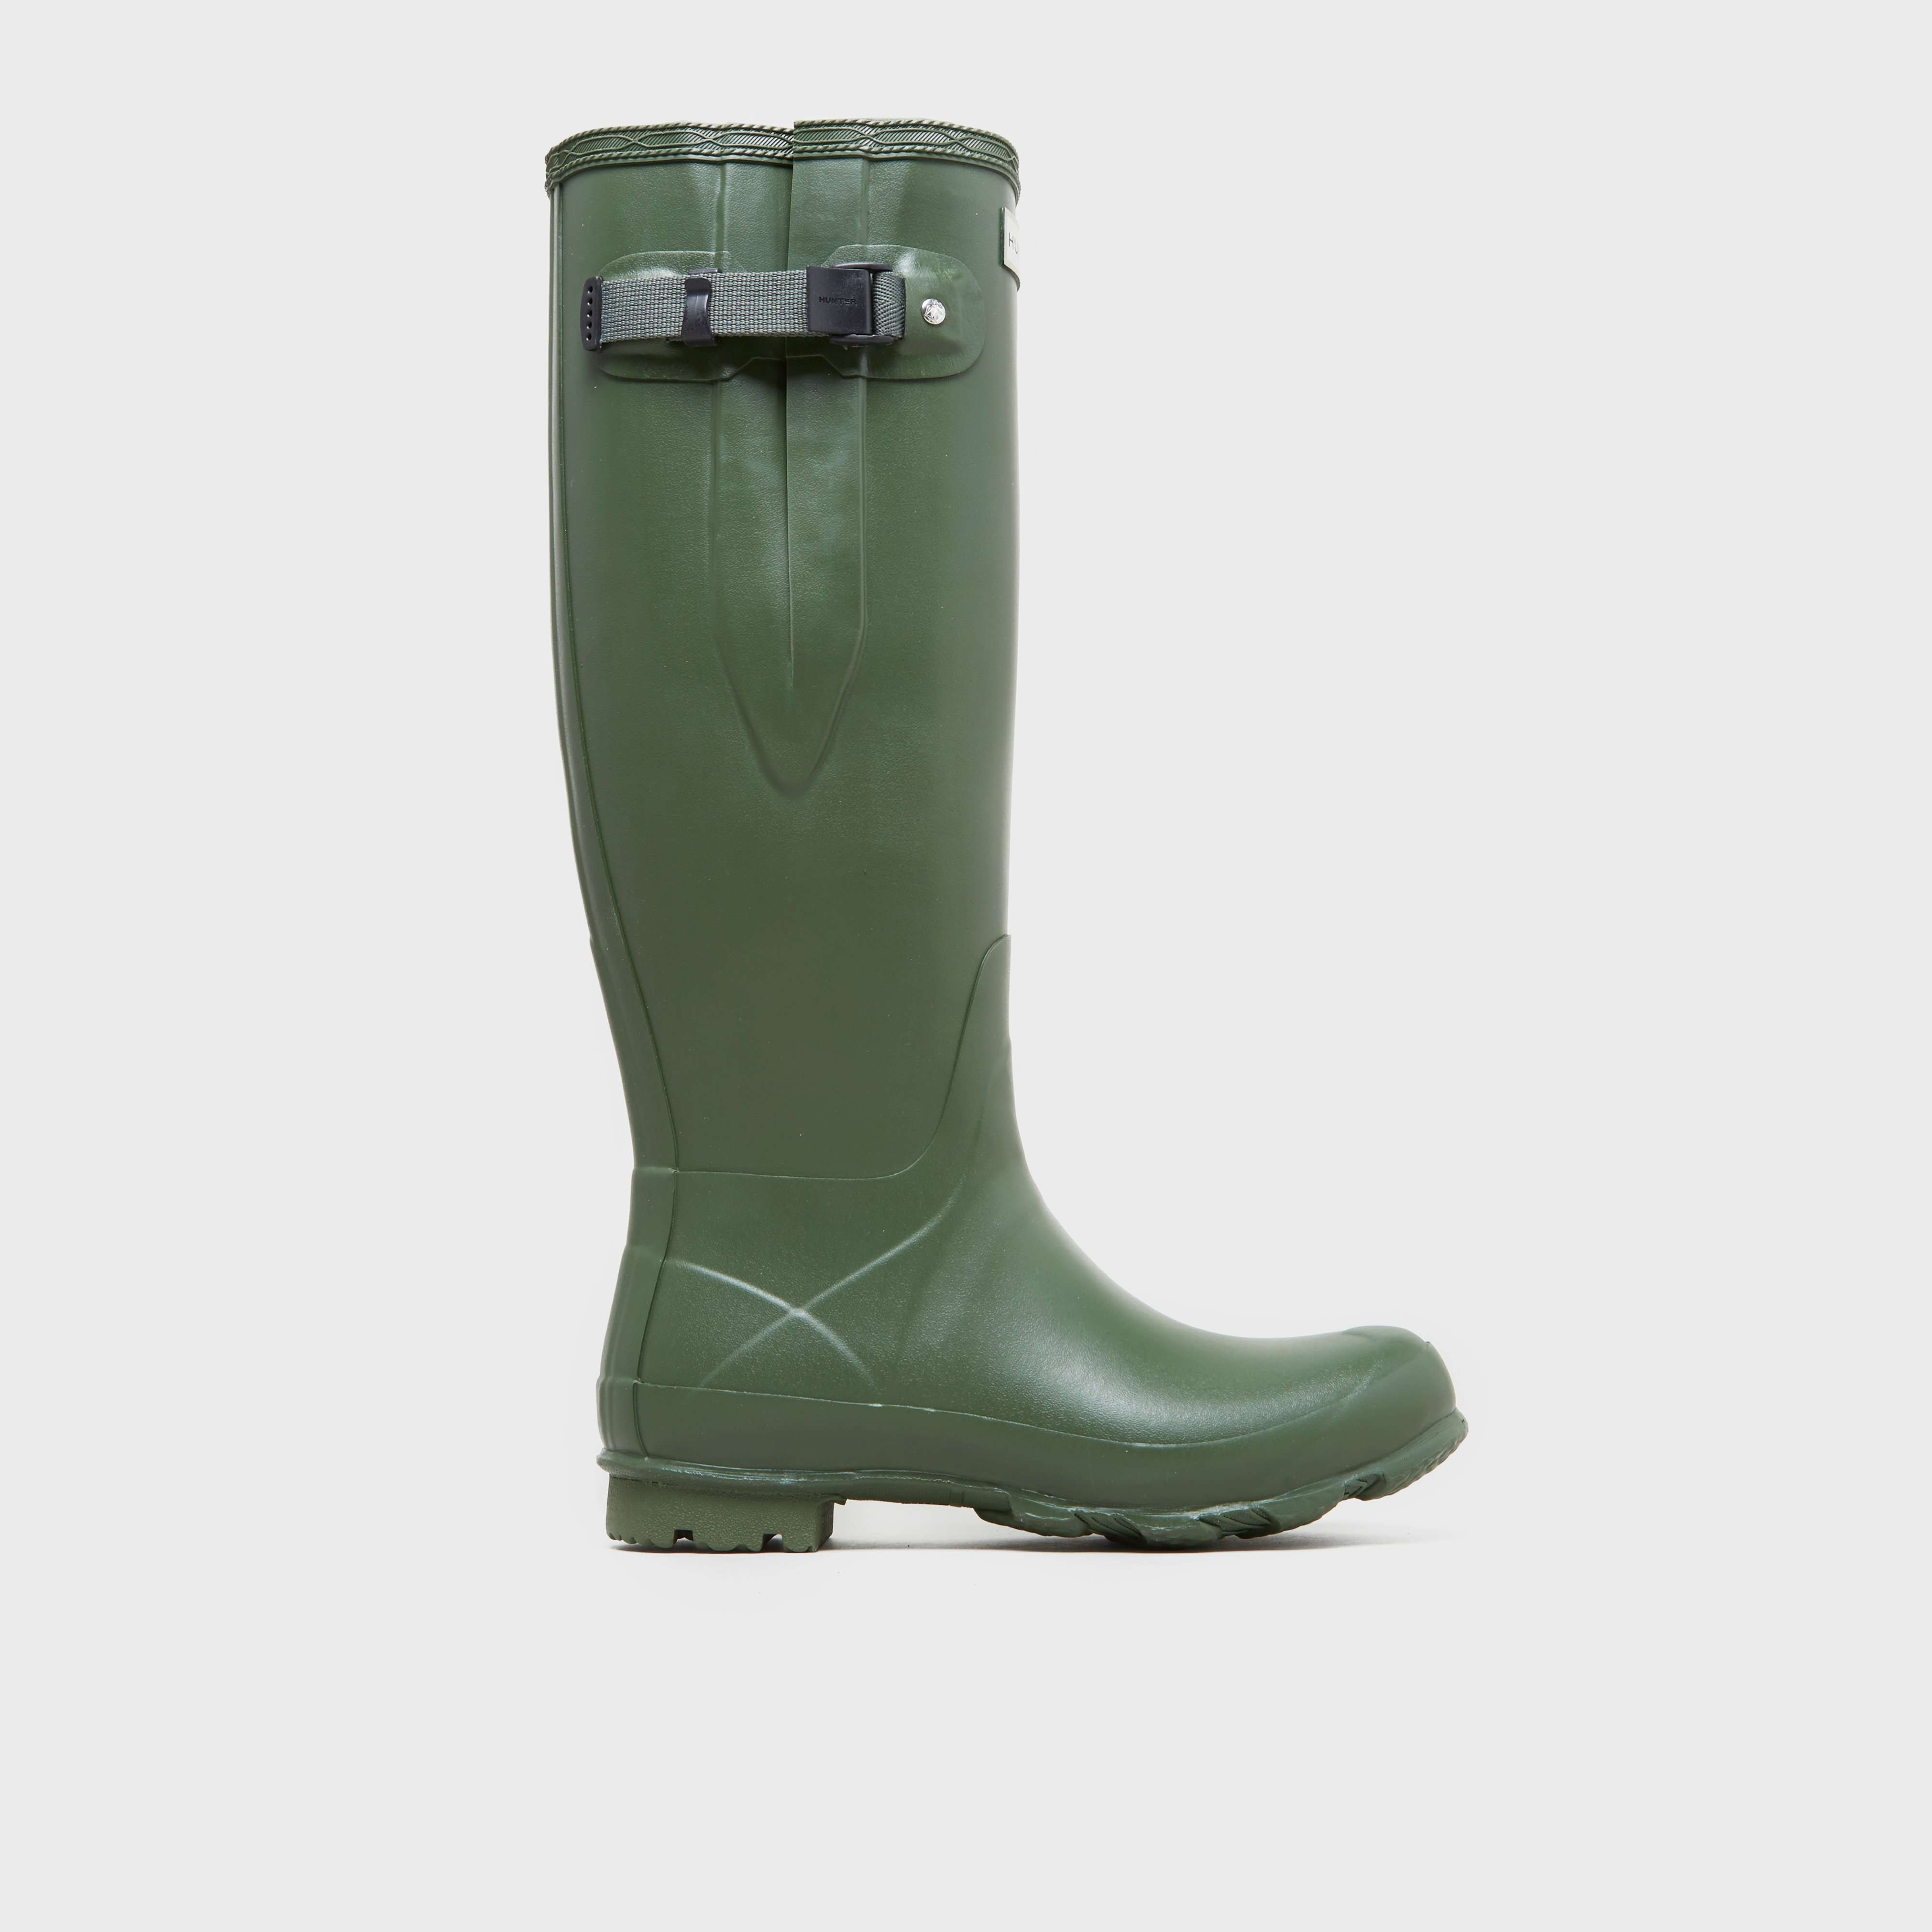 HUNTER Women's Norris Field Adjustable Wellington